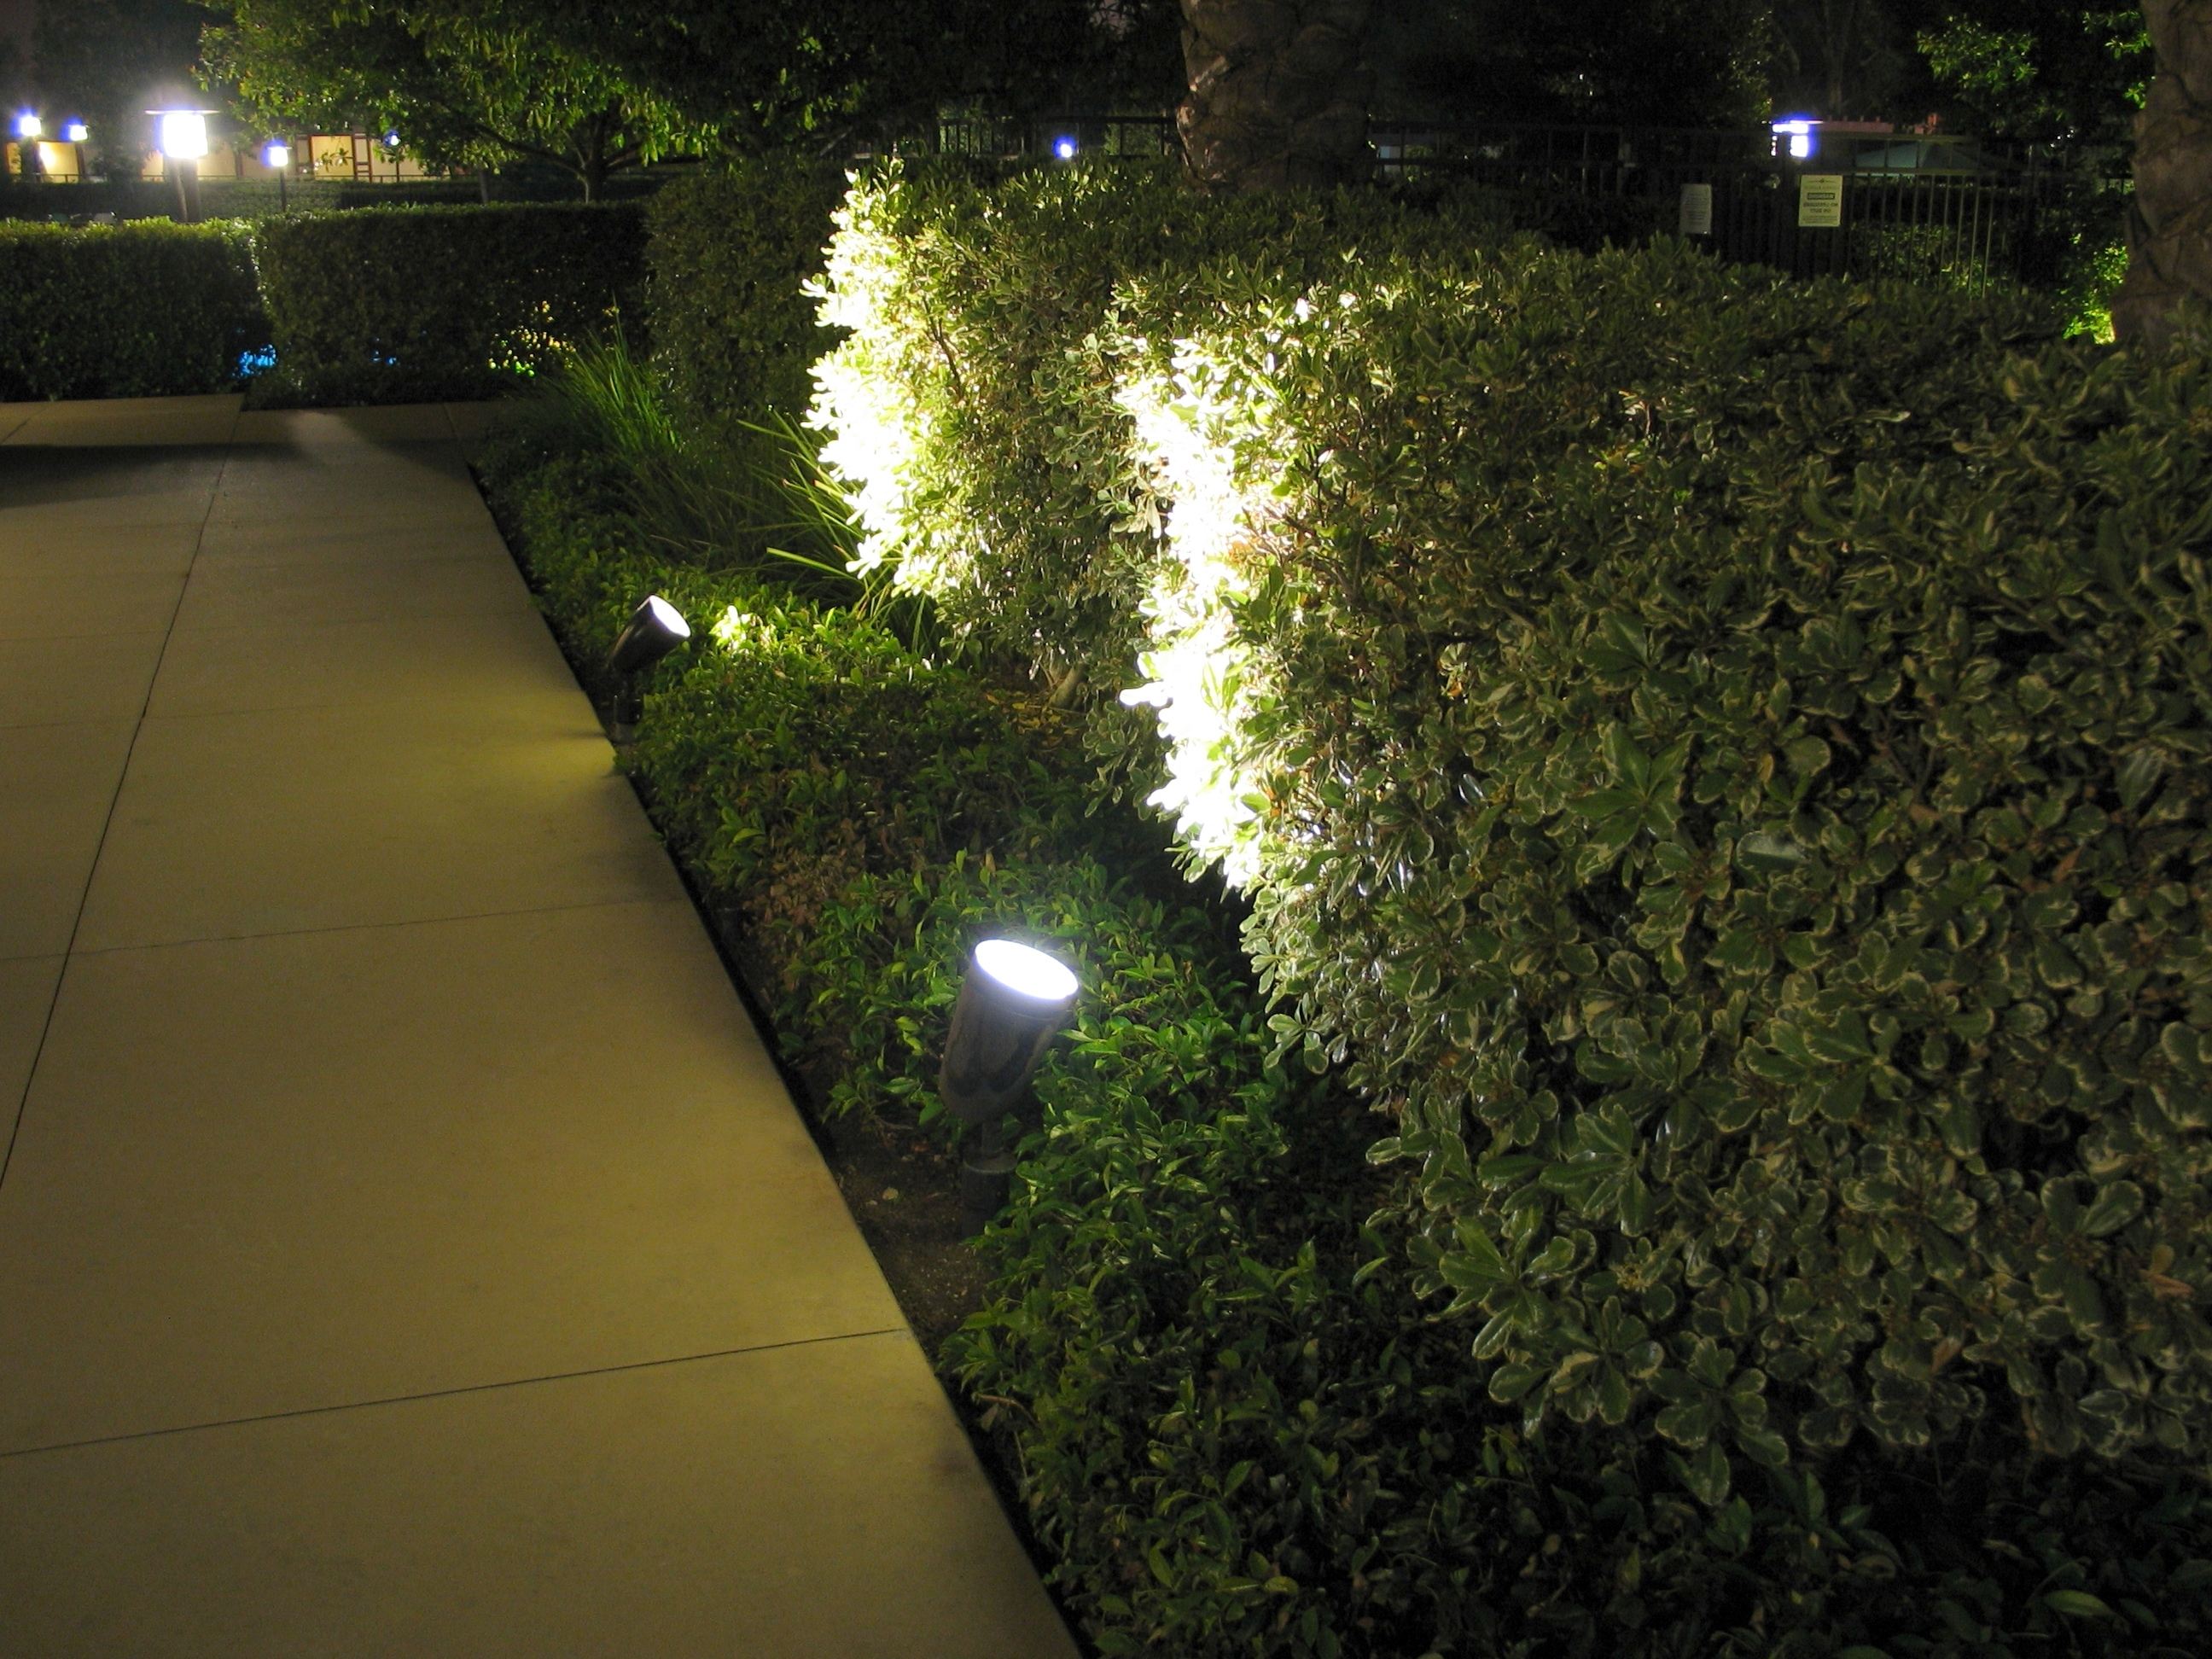 Outdoor Driveway Lanterns Within Most Current Led Lighting : Solar Outdoor Driveway Lighting Contemporary Used In (View 15 of 20)